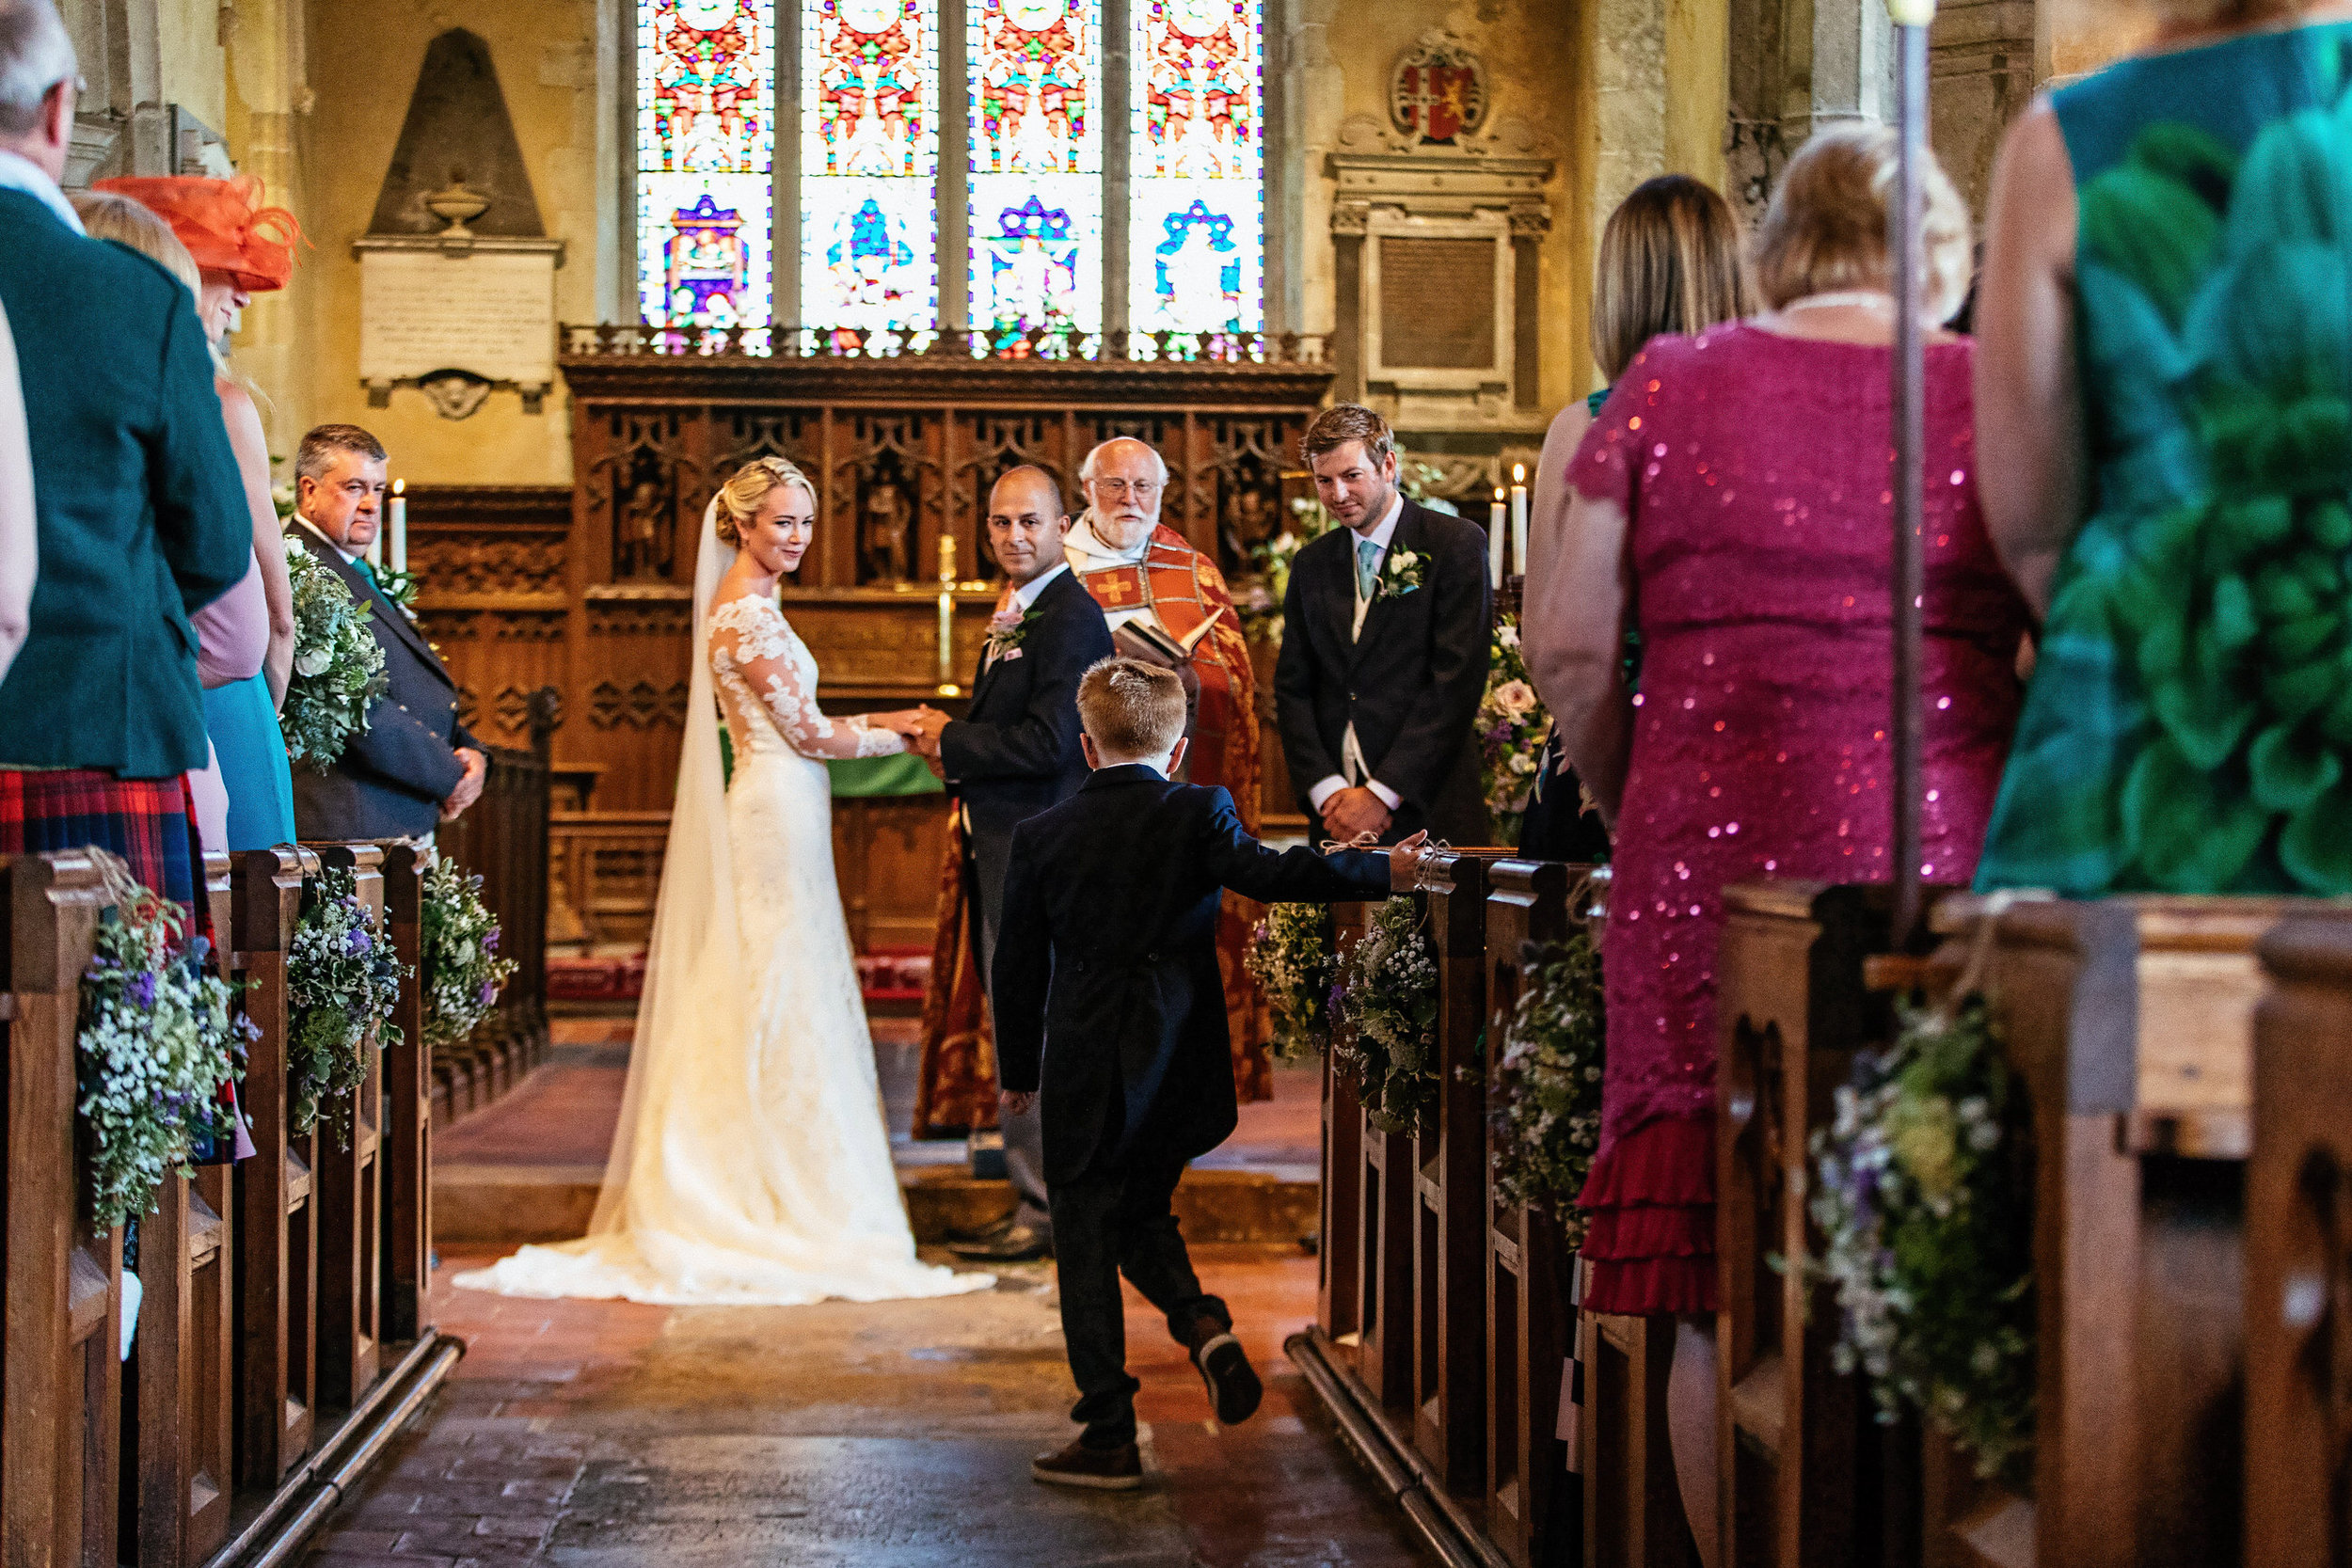 Biddenden Wedding Photographer 0054.jpg